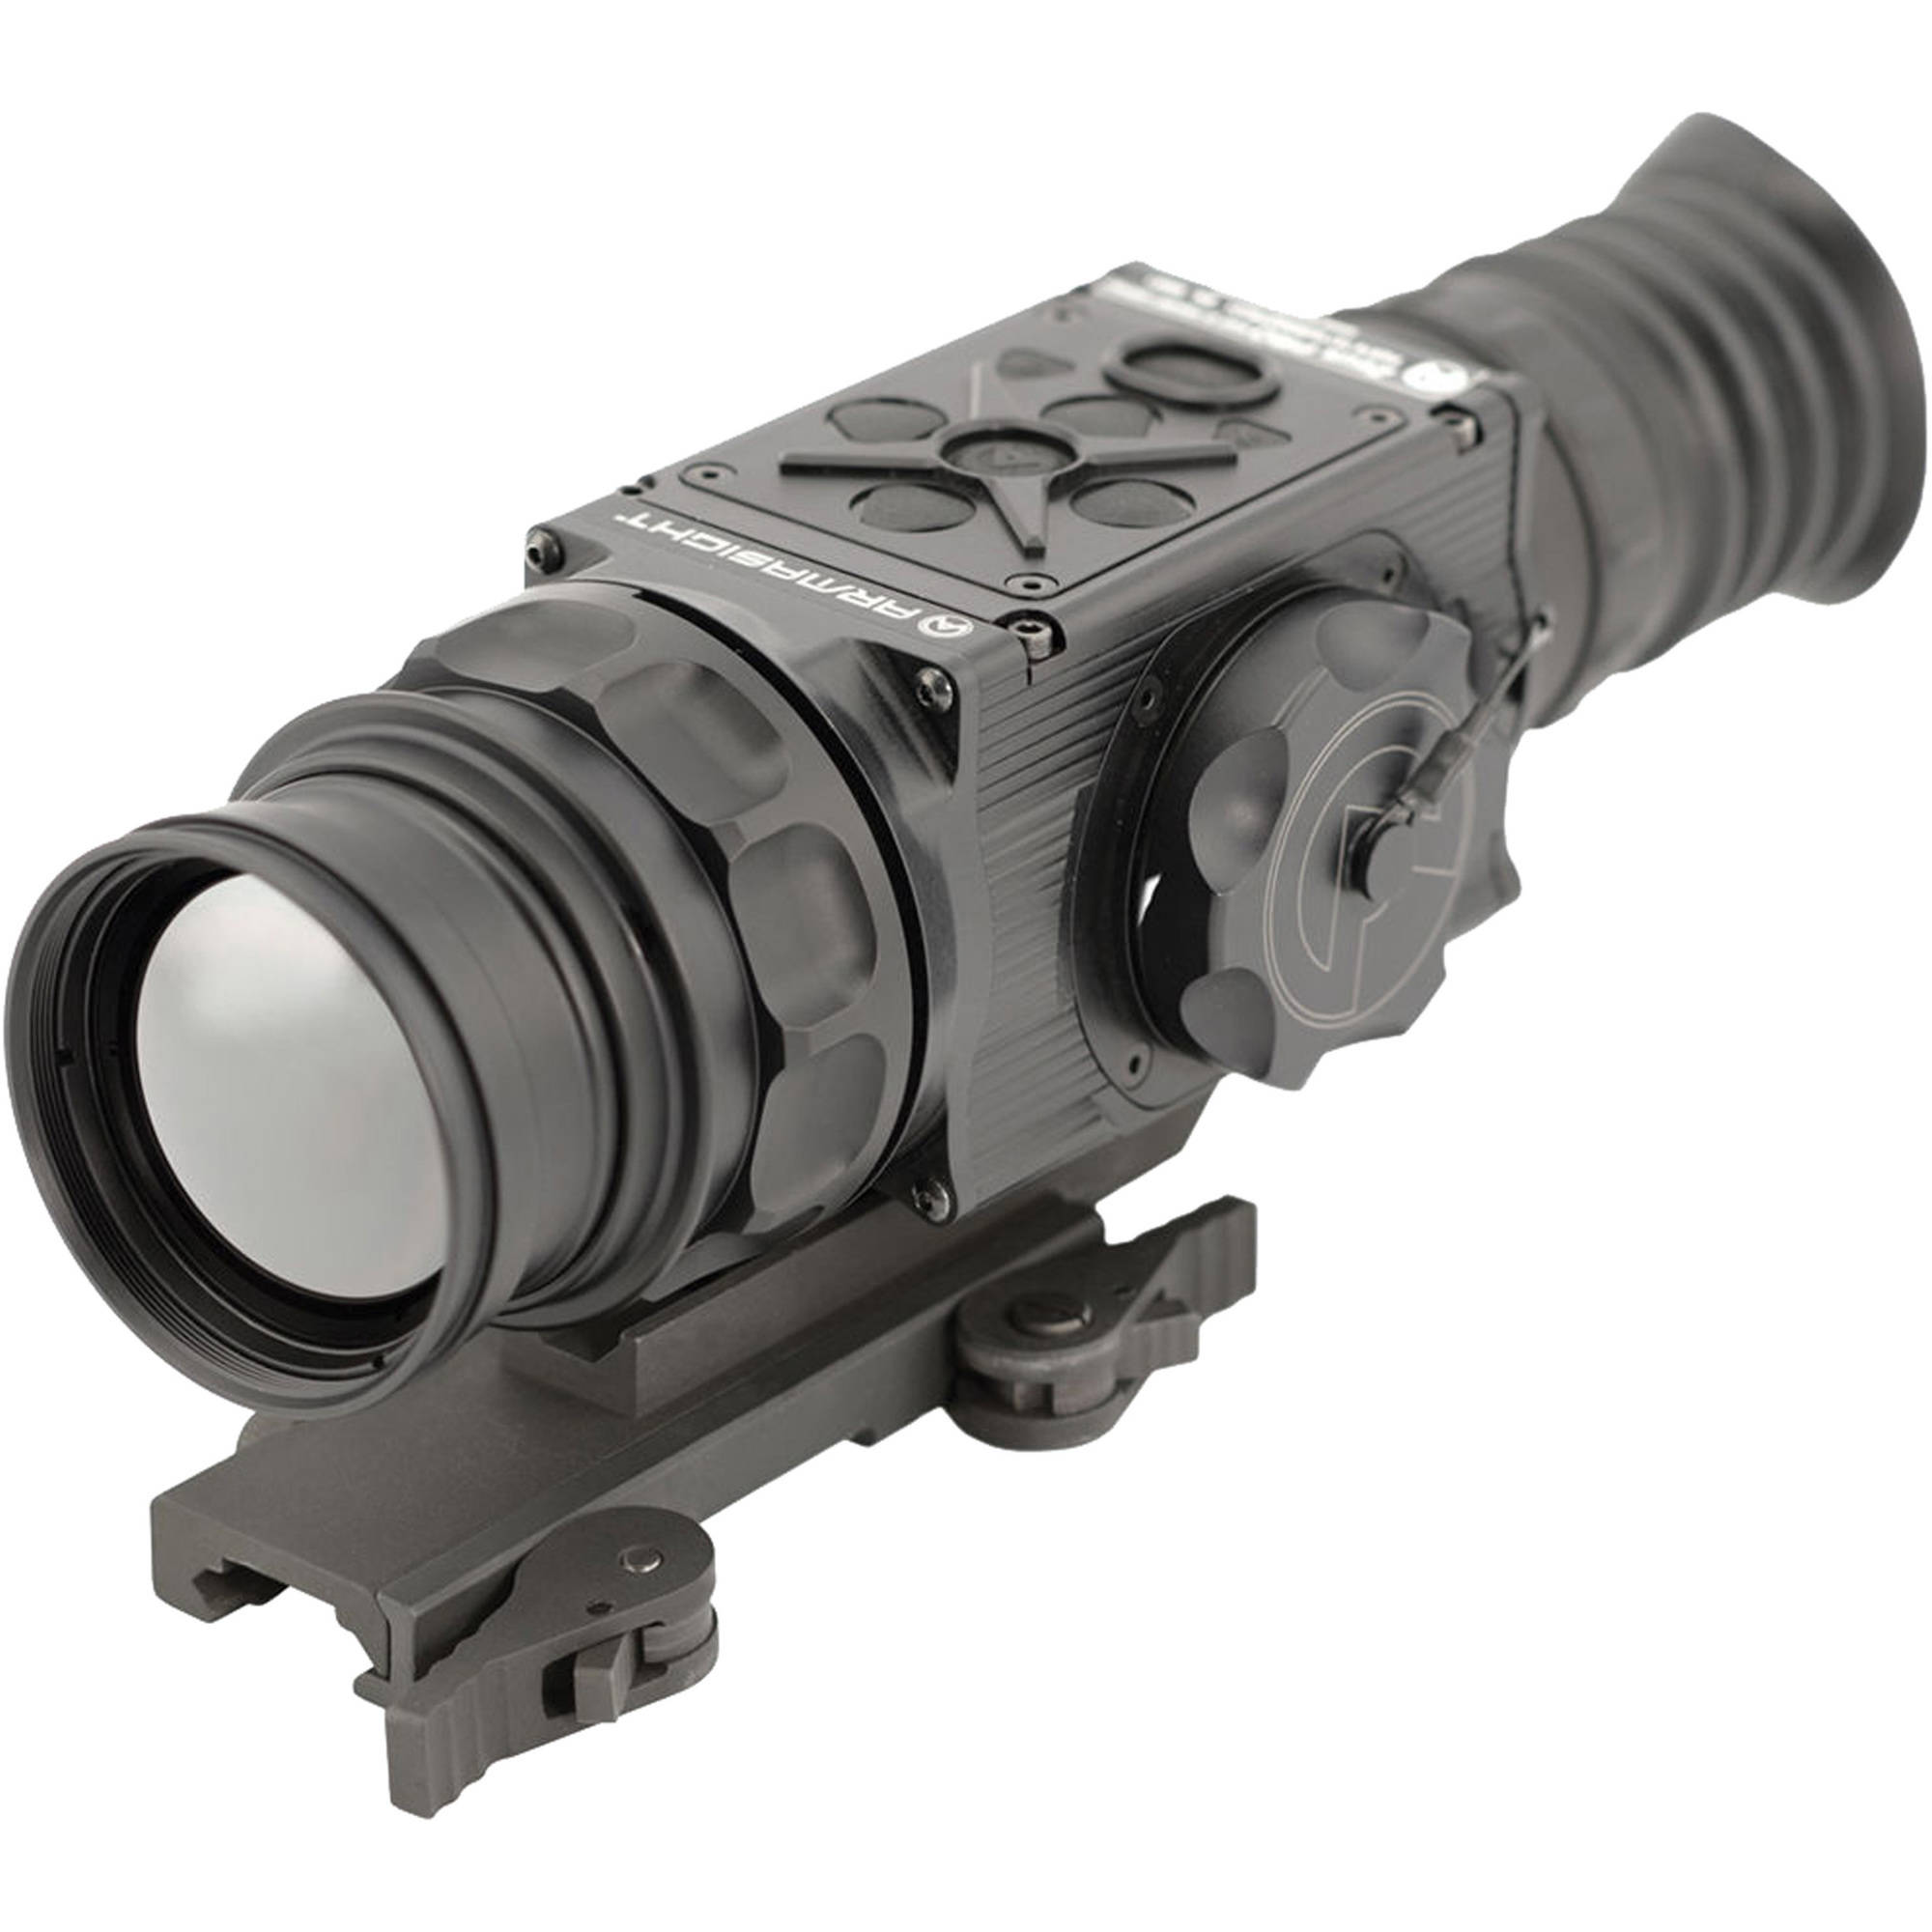 Armasight TAT163WN5ZPRO21 Zeus-Pro 640 2-16x50 Thermal IMaging Weapon Sight by Armasight